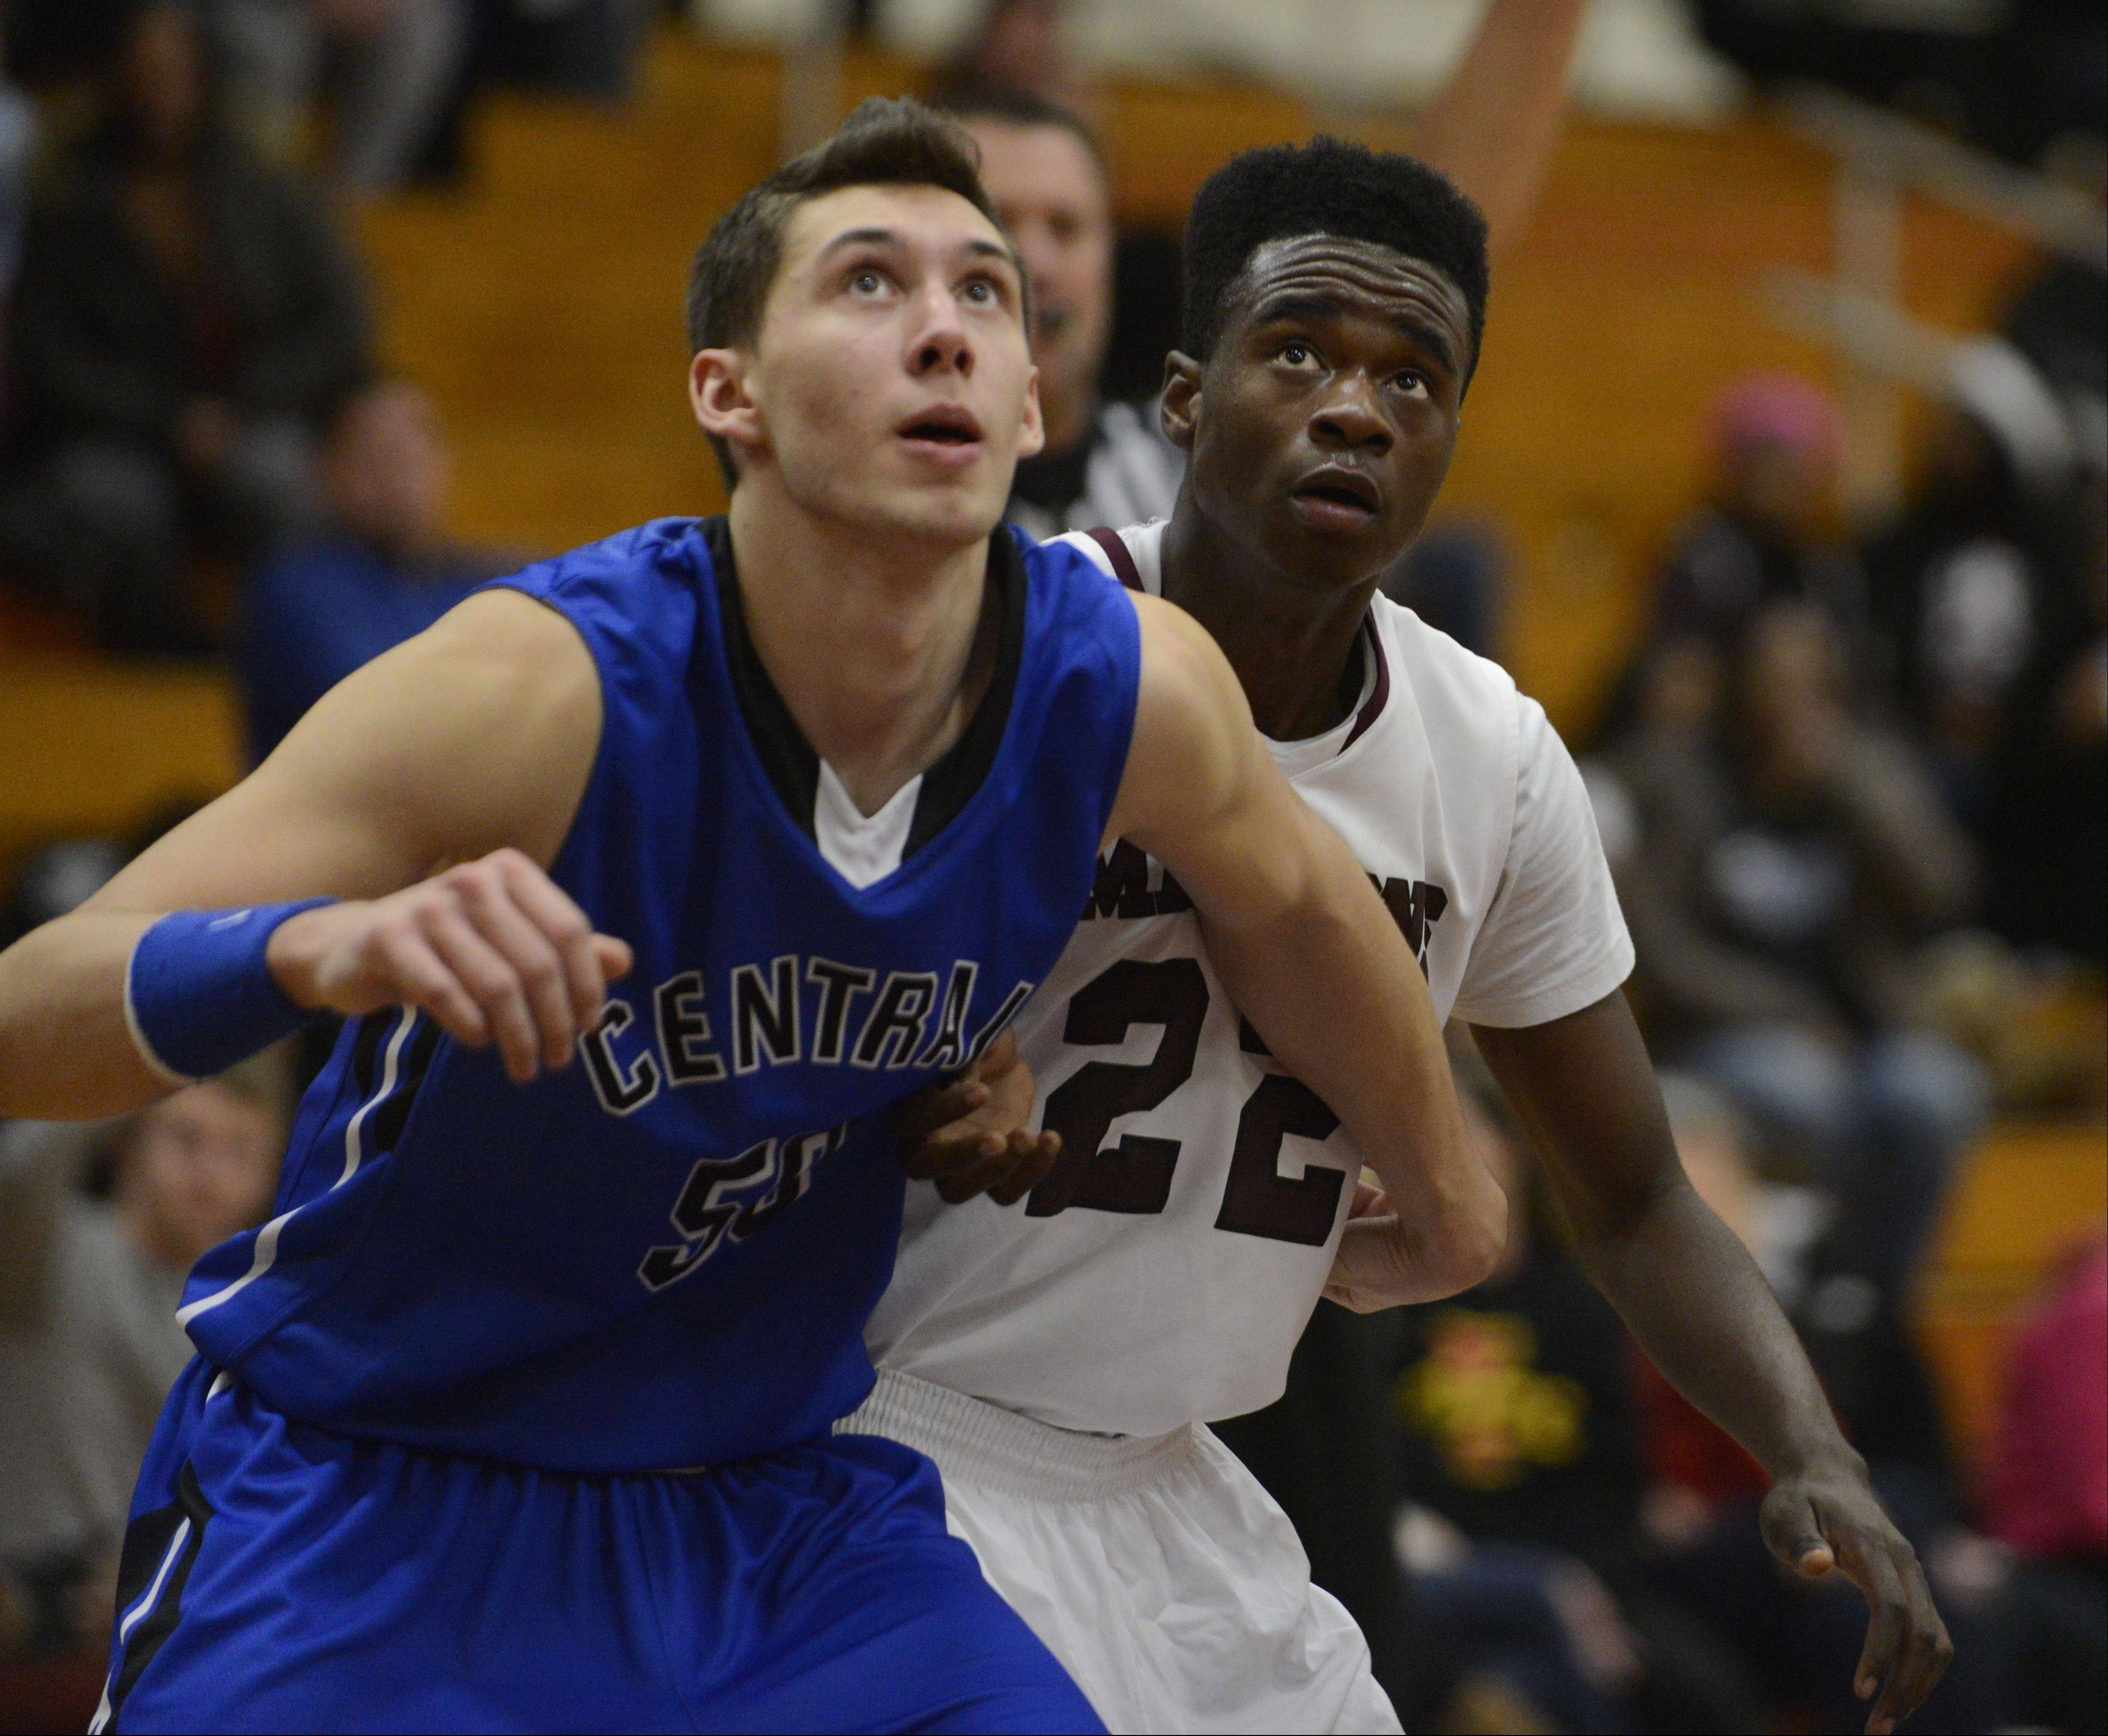 Burlington Central's Duncan Ozburn gets ready for a rebound against Elgin Tuesday night.